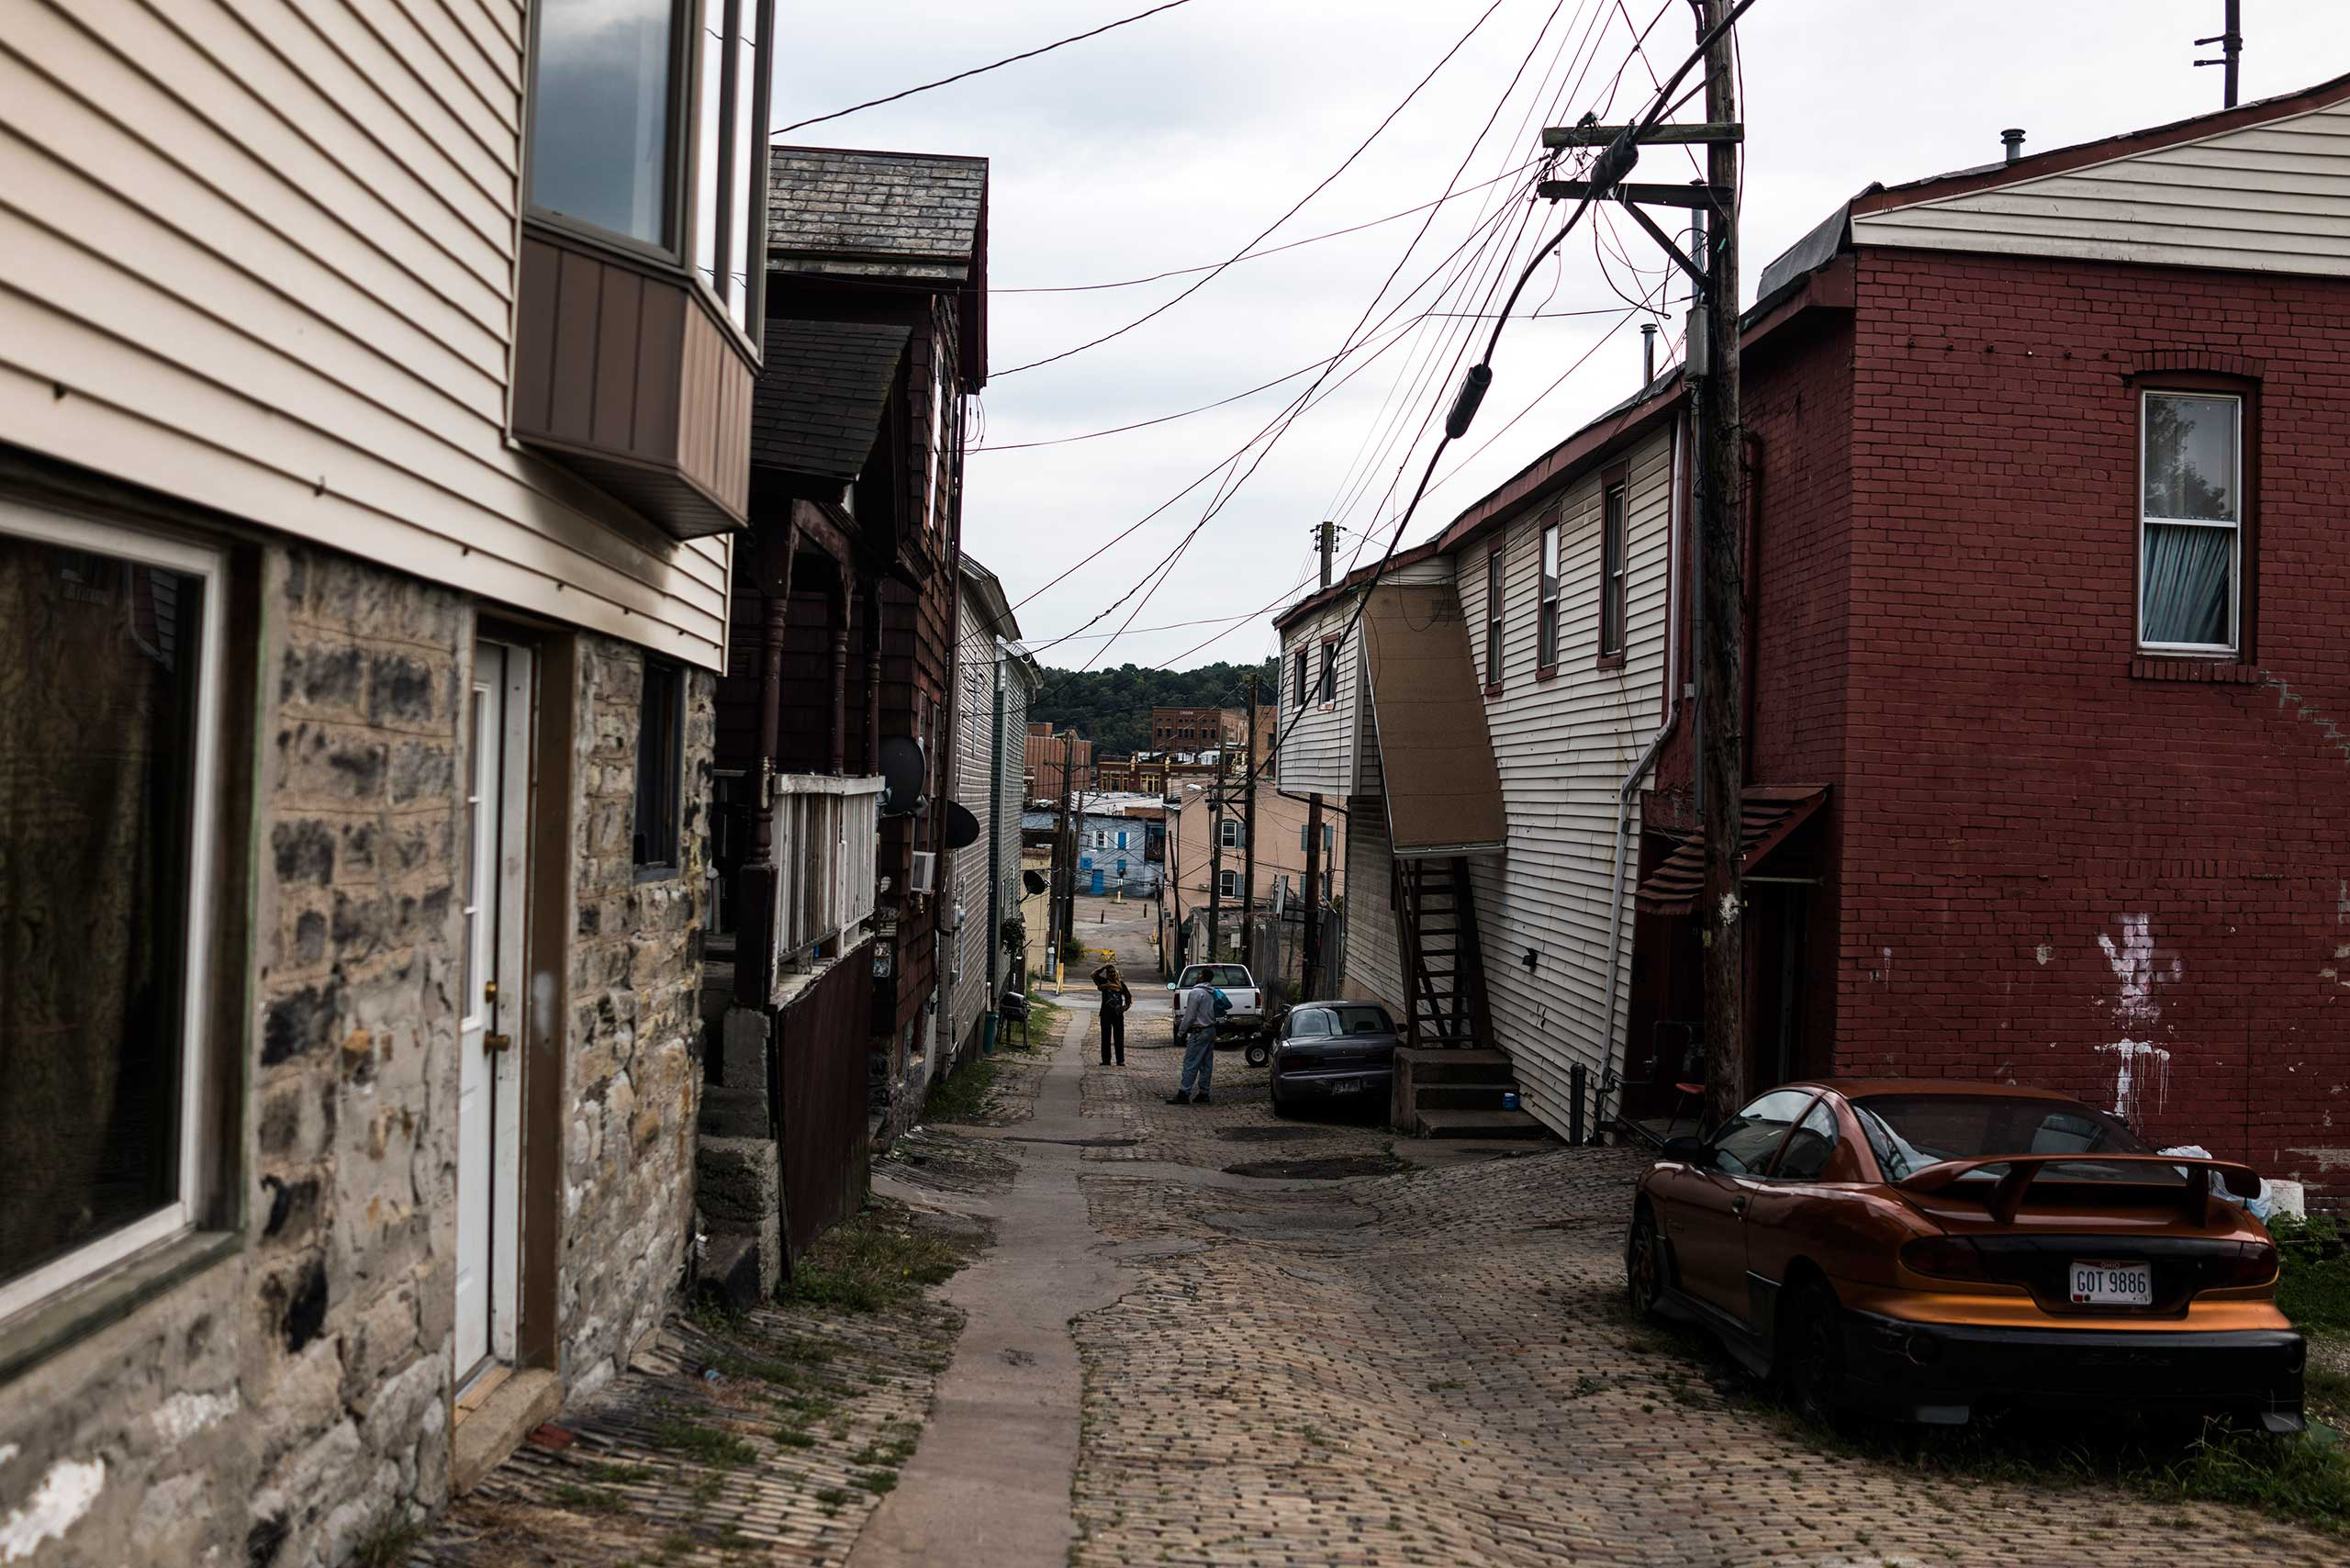 Green Lane, a road commonly known in East Liverpool as the Ohio town's drug alley, on Oct. 8, 2016.